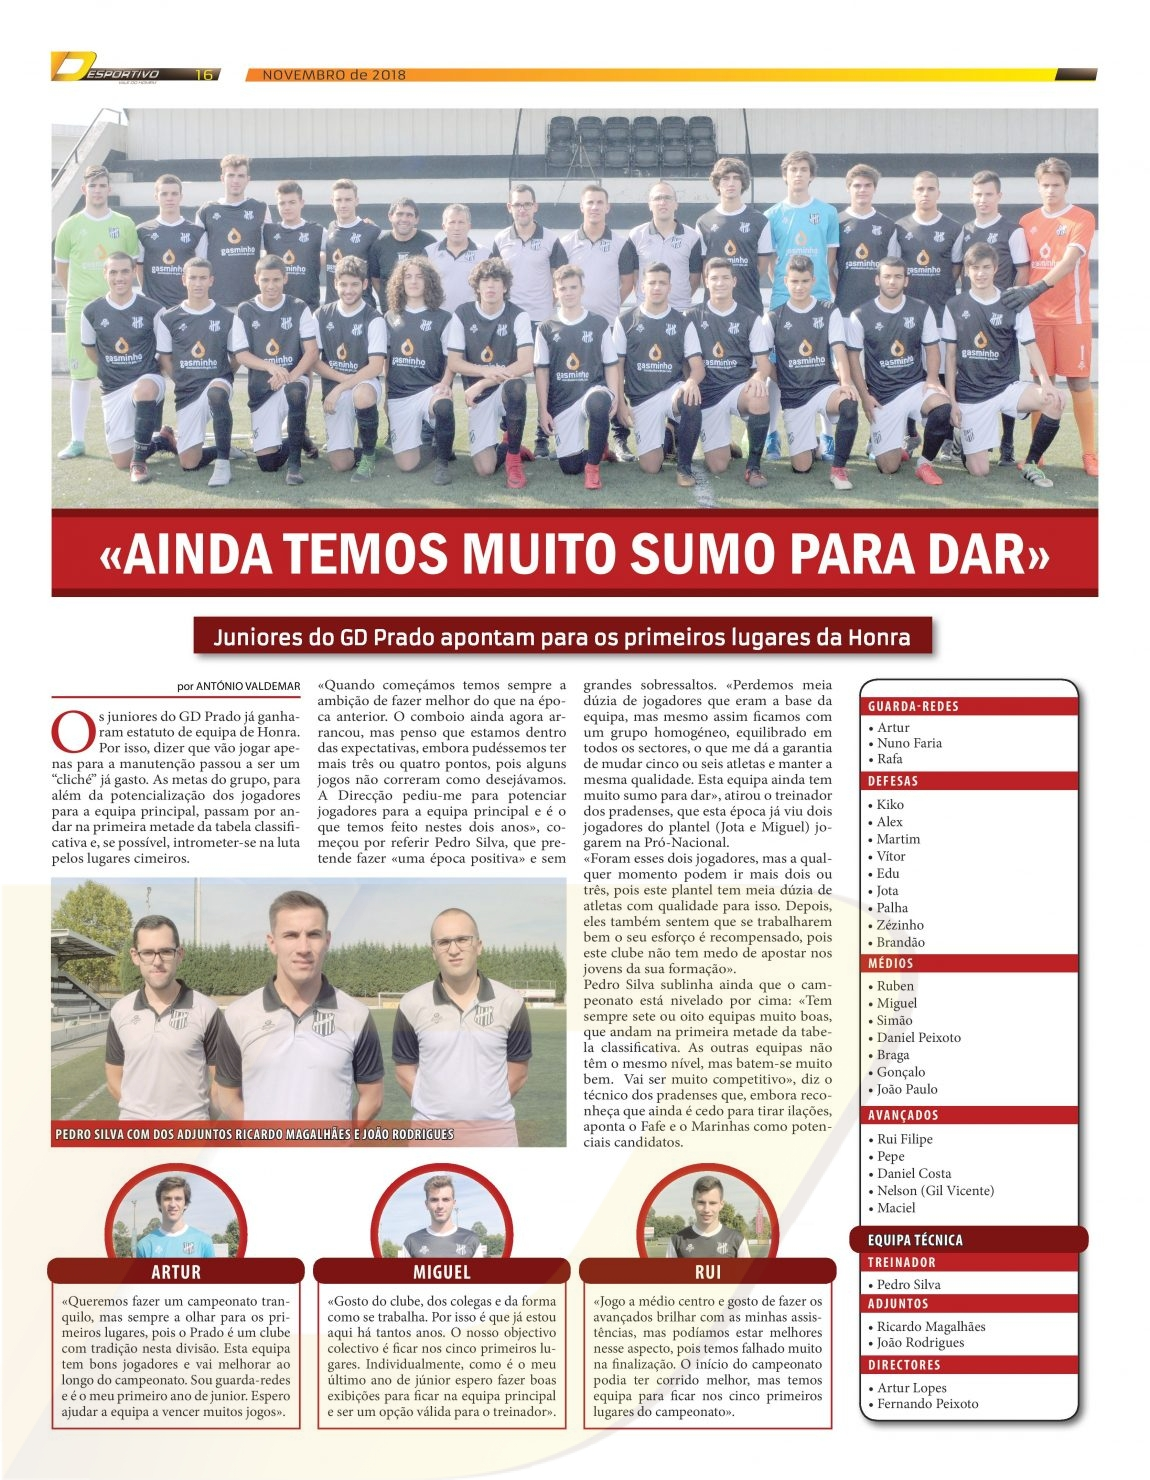 Juniores do GD Prado continuam a subir na tabela classificativa